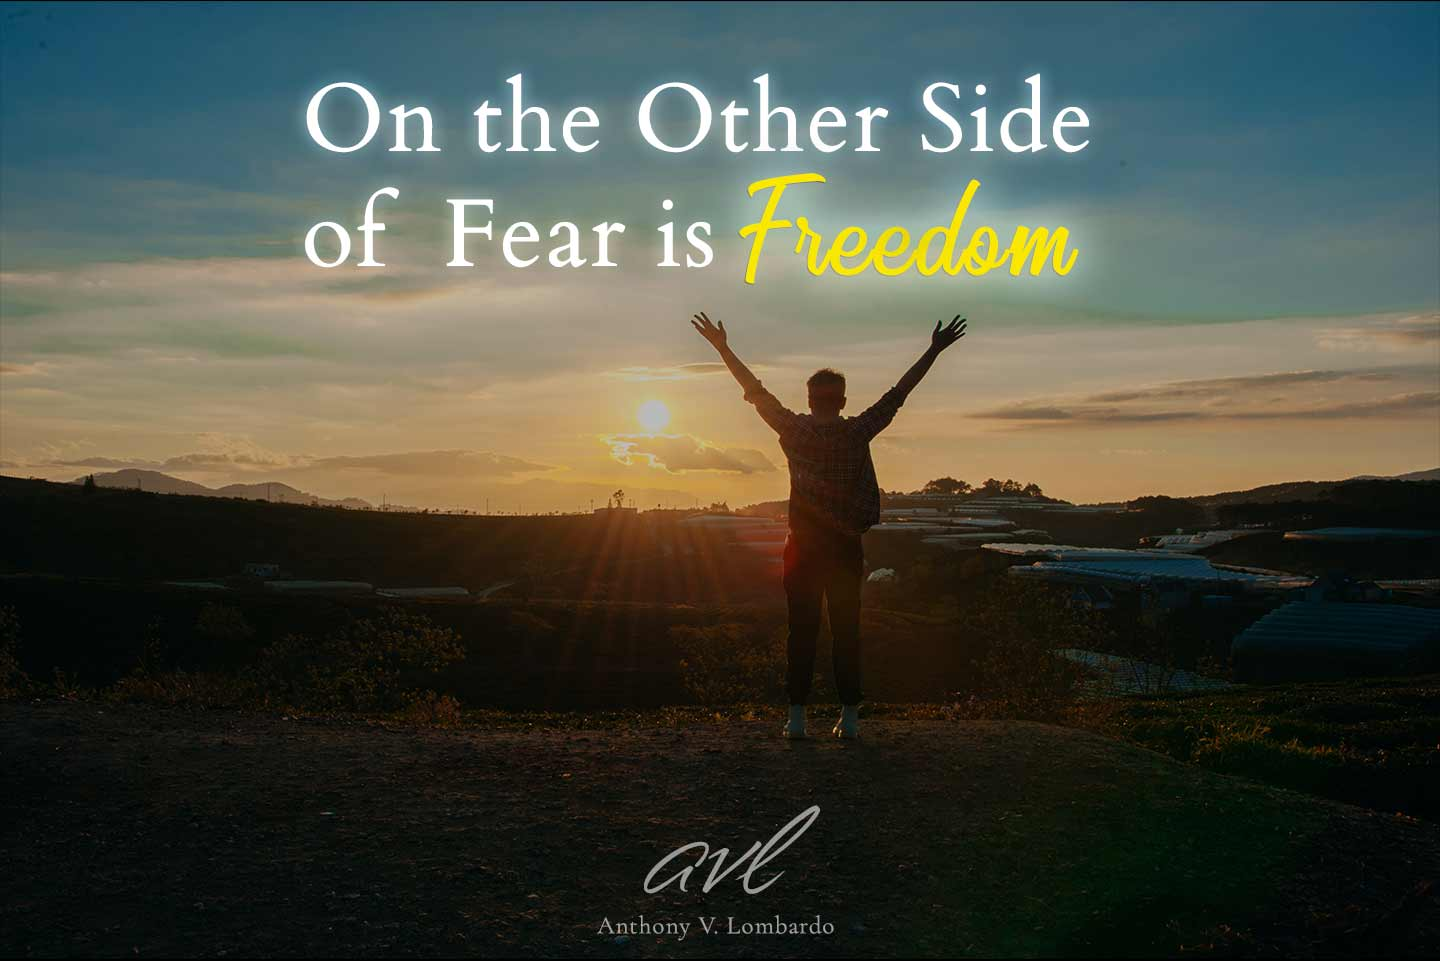 On the Other Side of Fear is Freedom